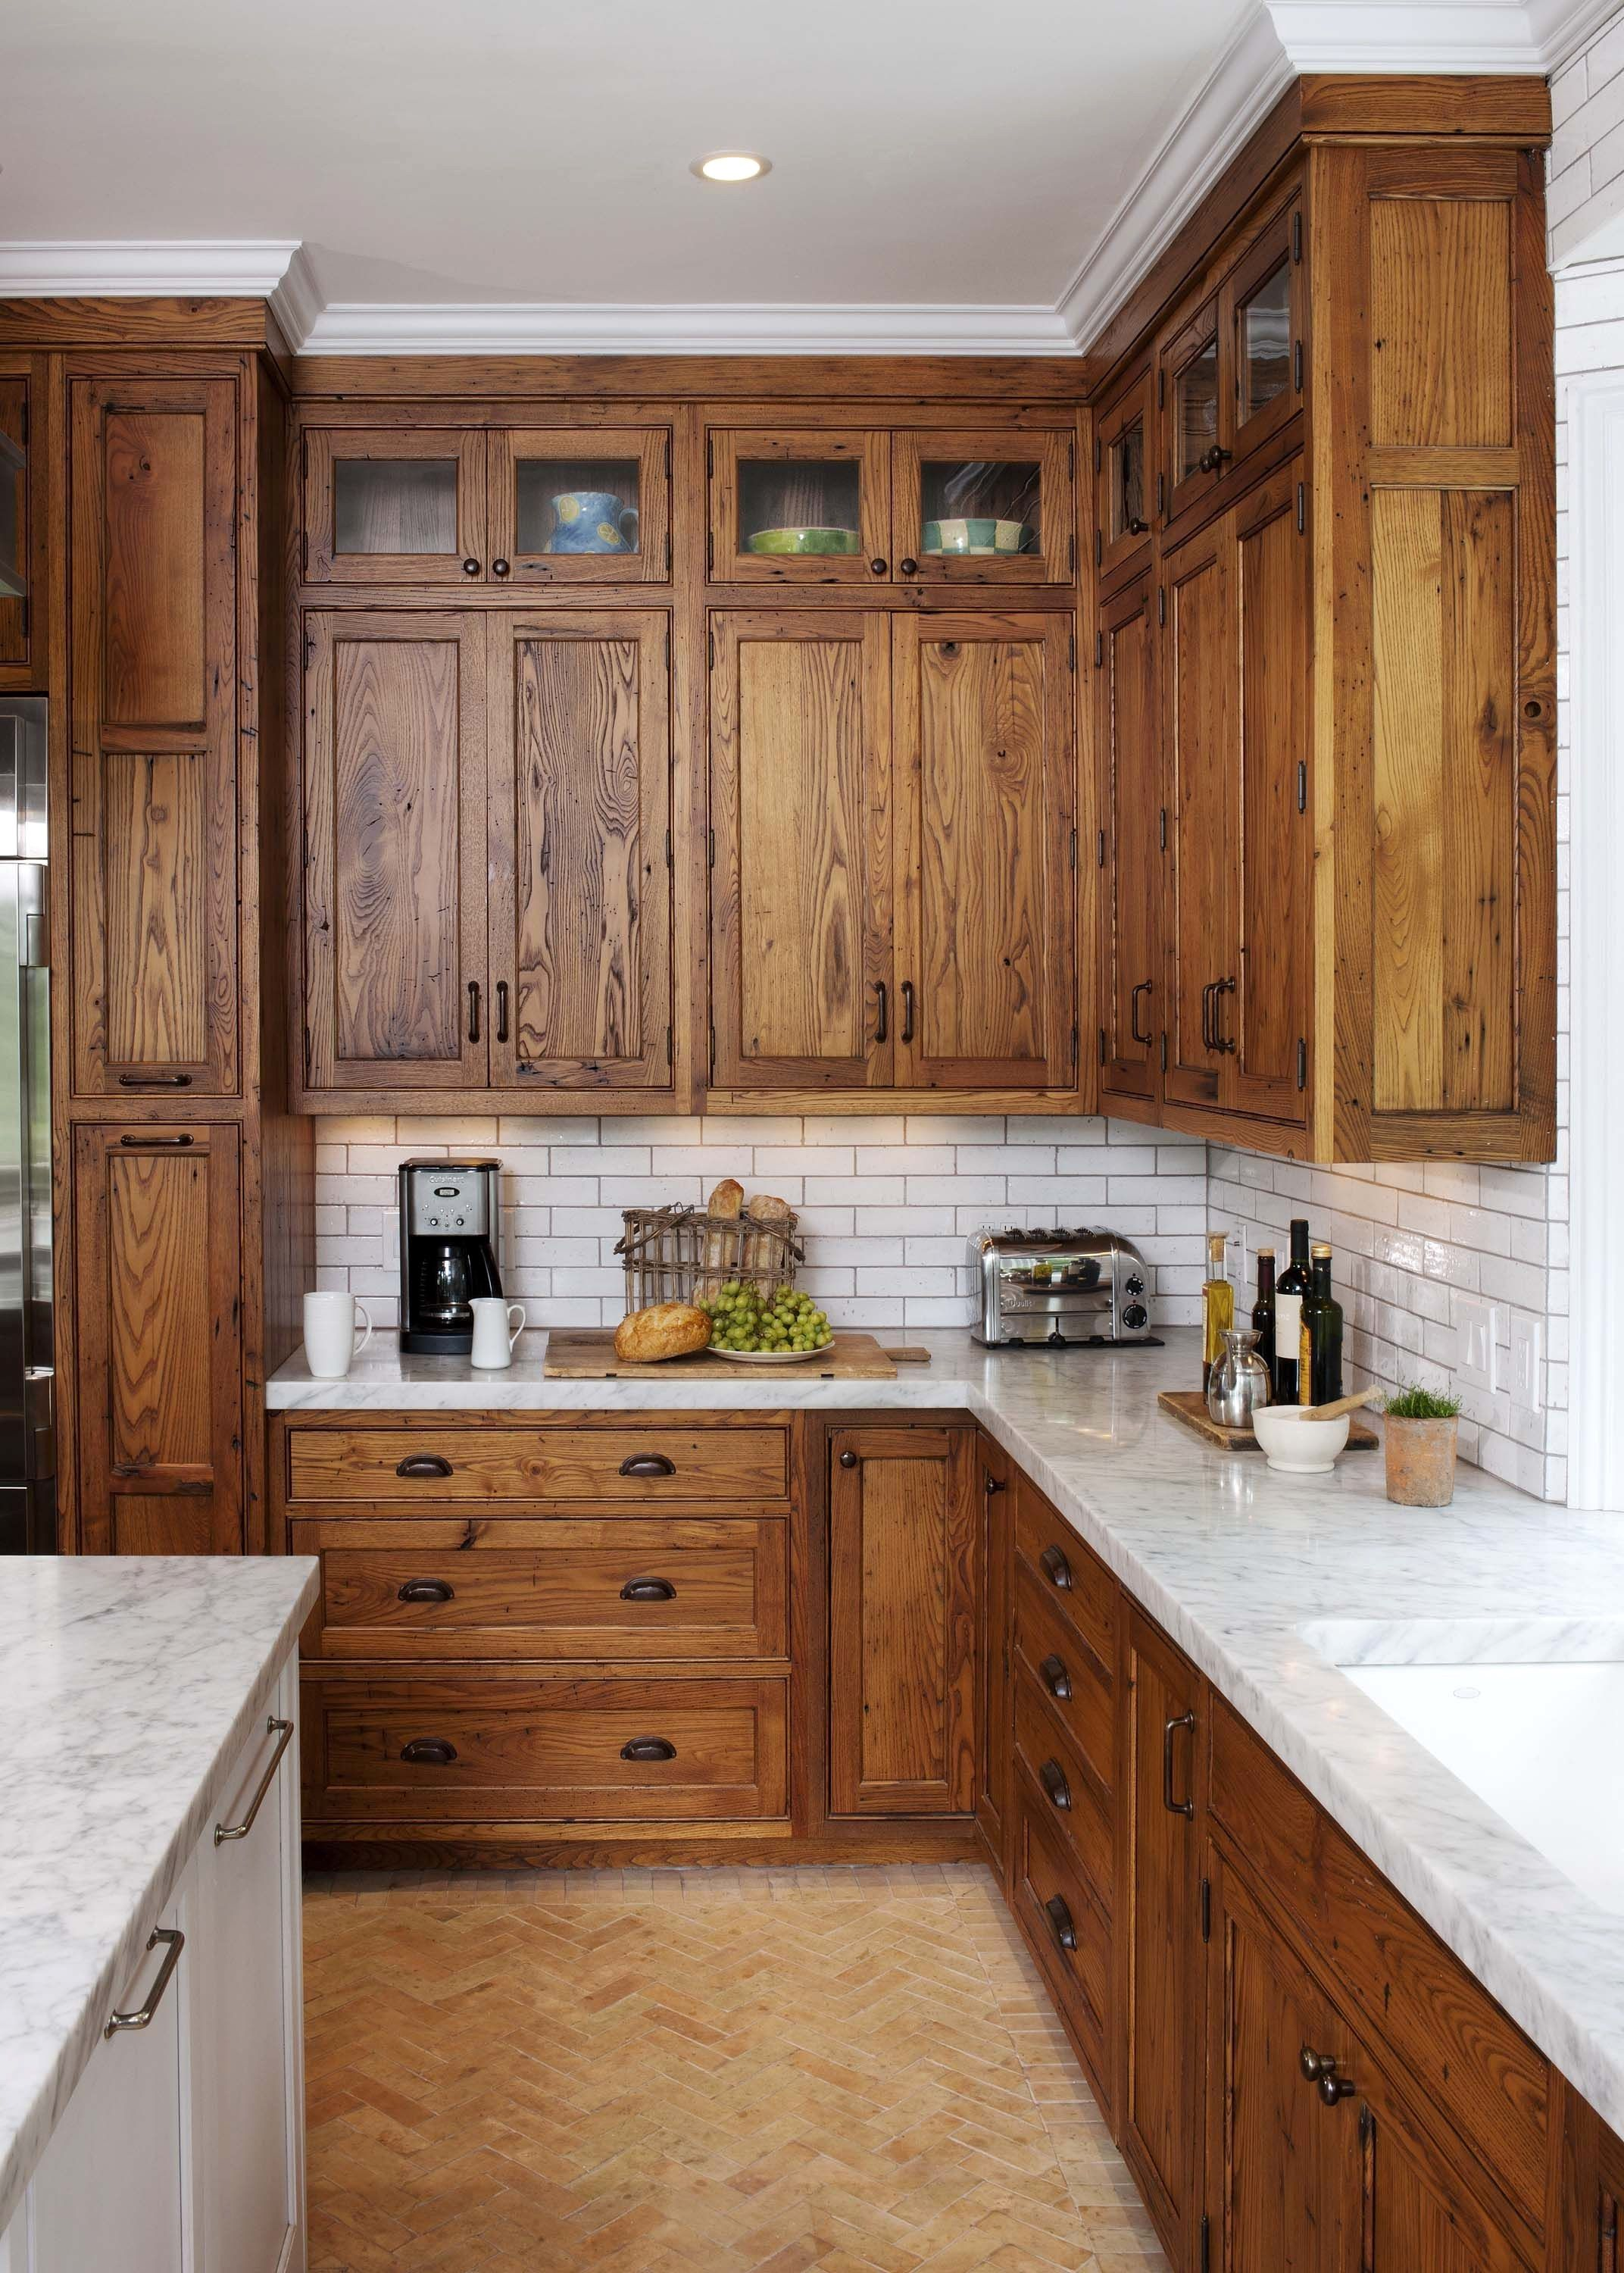 Rustic Hickory Kitchen Cabinets Portable Island With Stools Lovely Reclaimed Chestnut I Will Be Doing This In My Reno